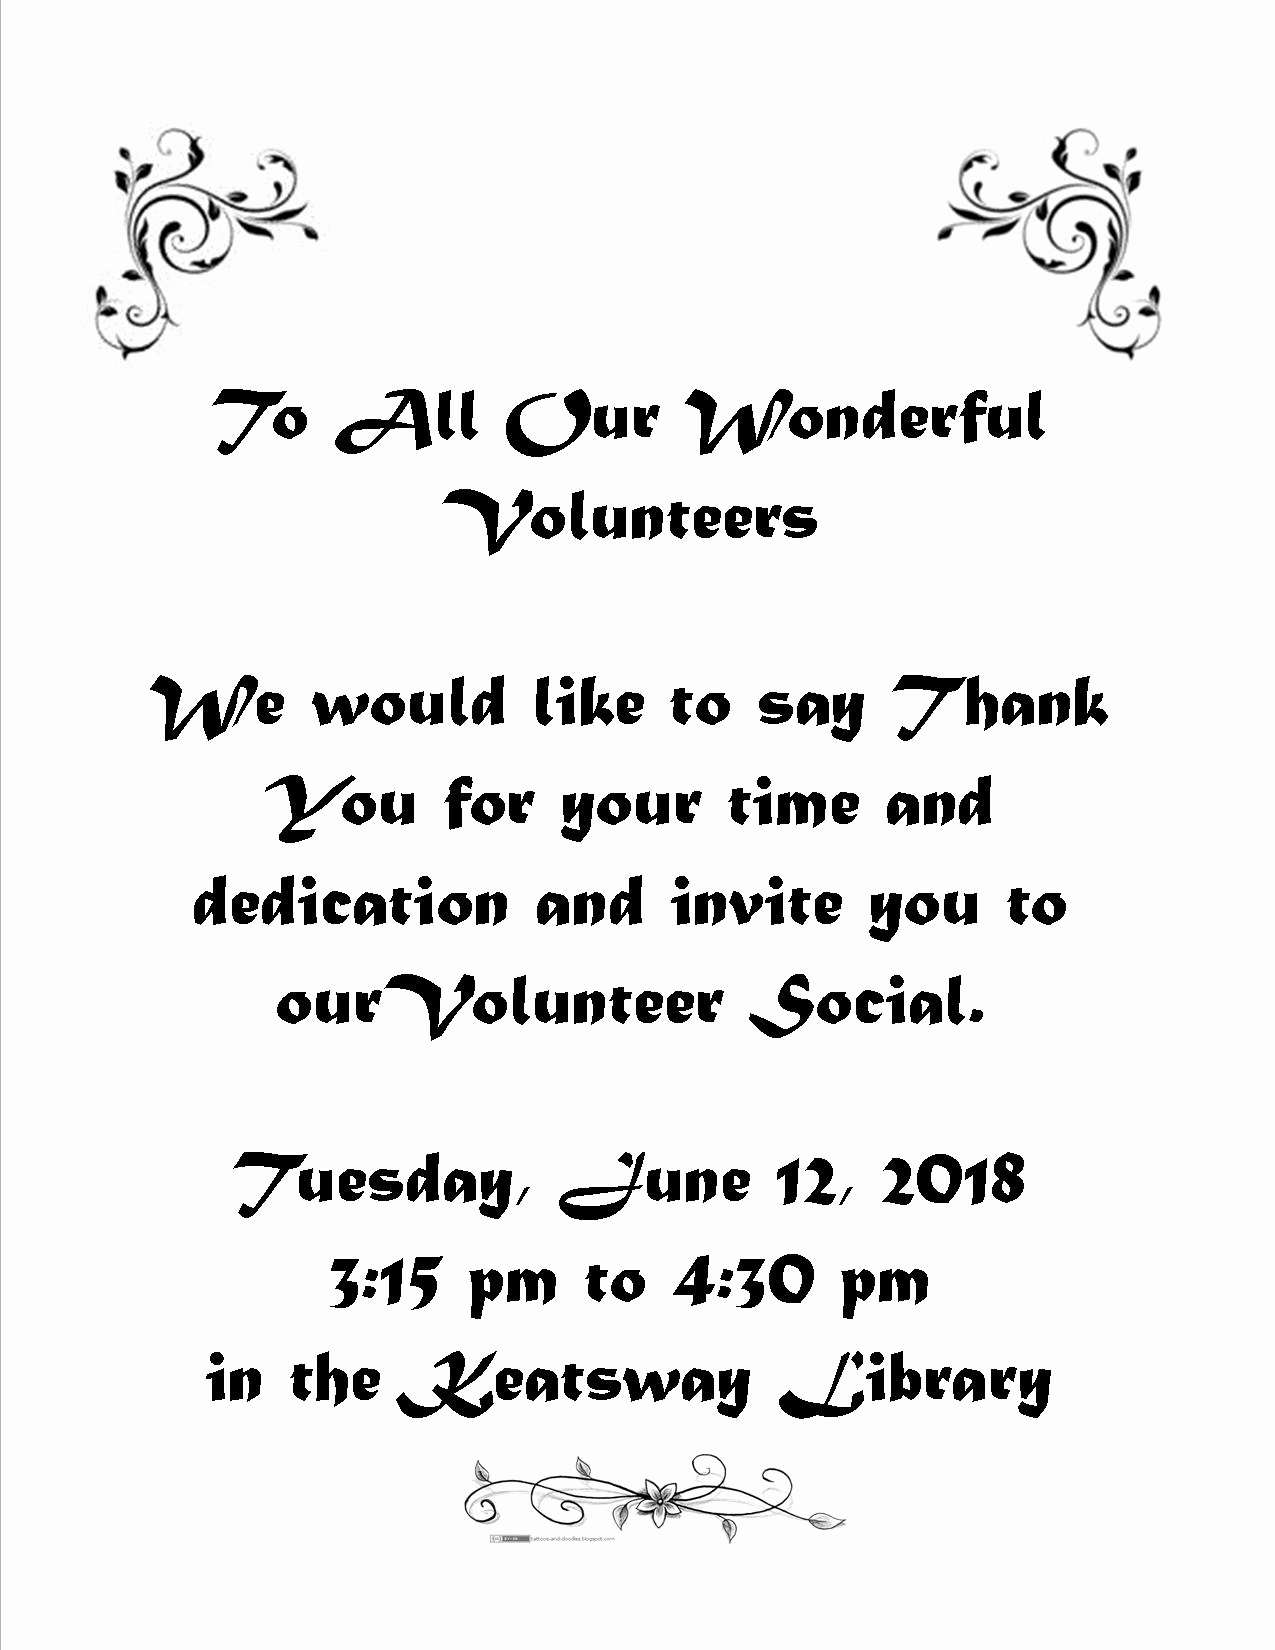 Volunteer Appreciation Invitation Wording Beautiful Volunteer Appreciation Invitation Keatsway Public School